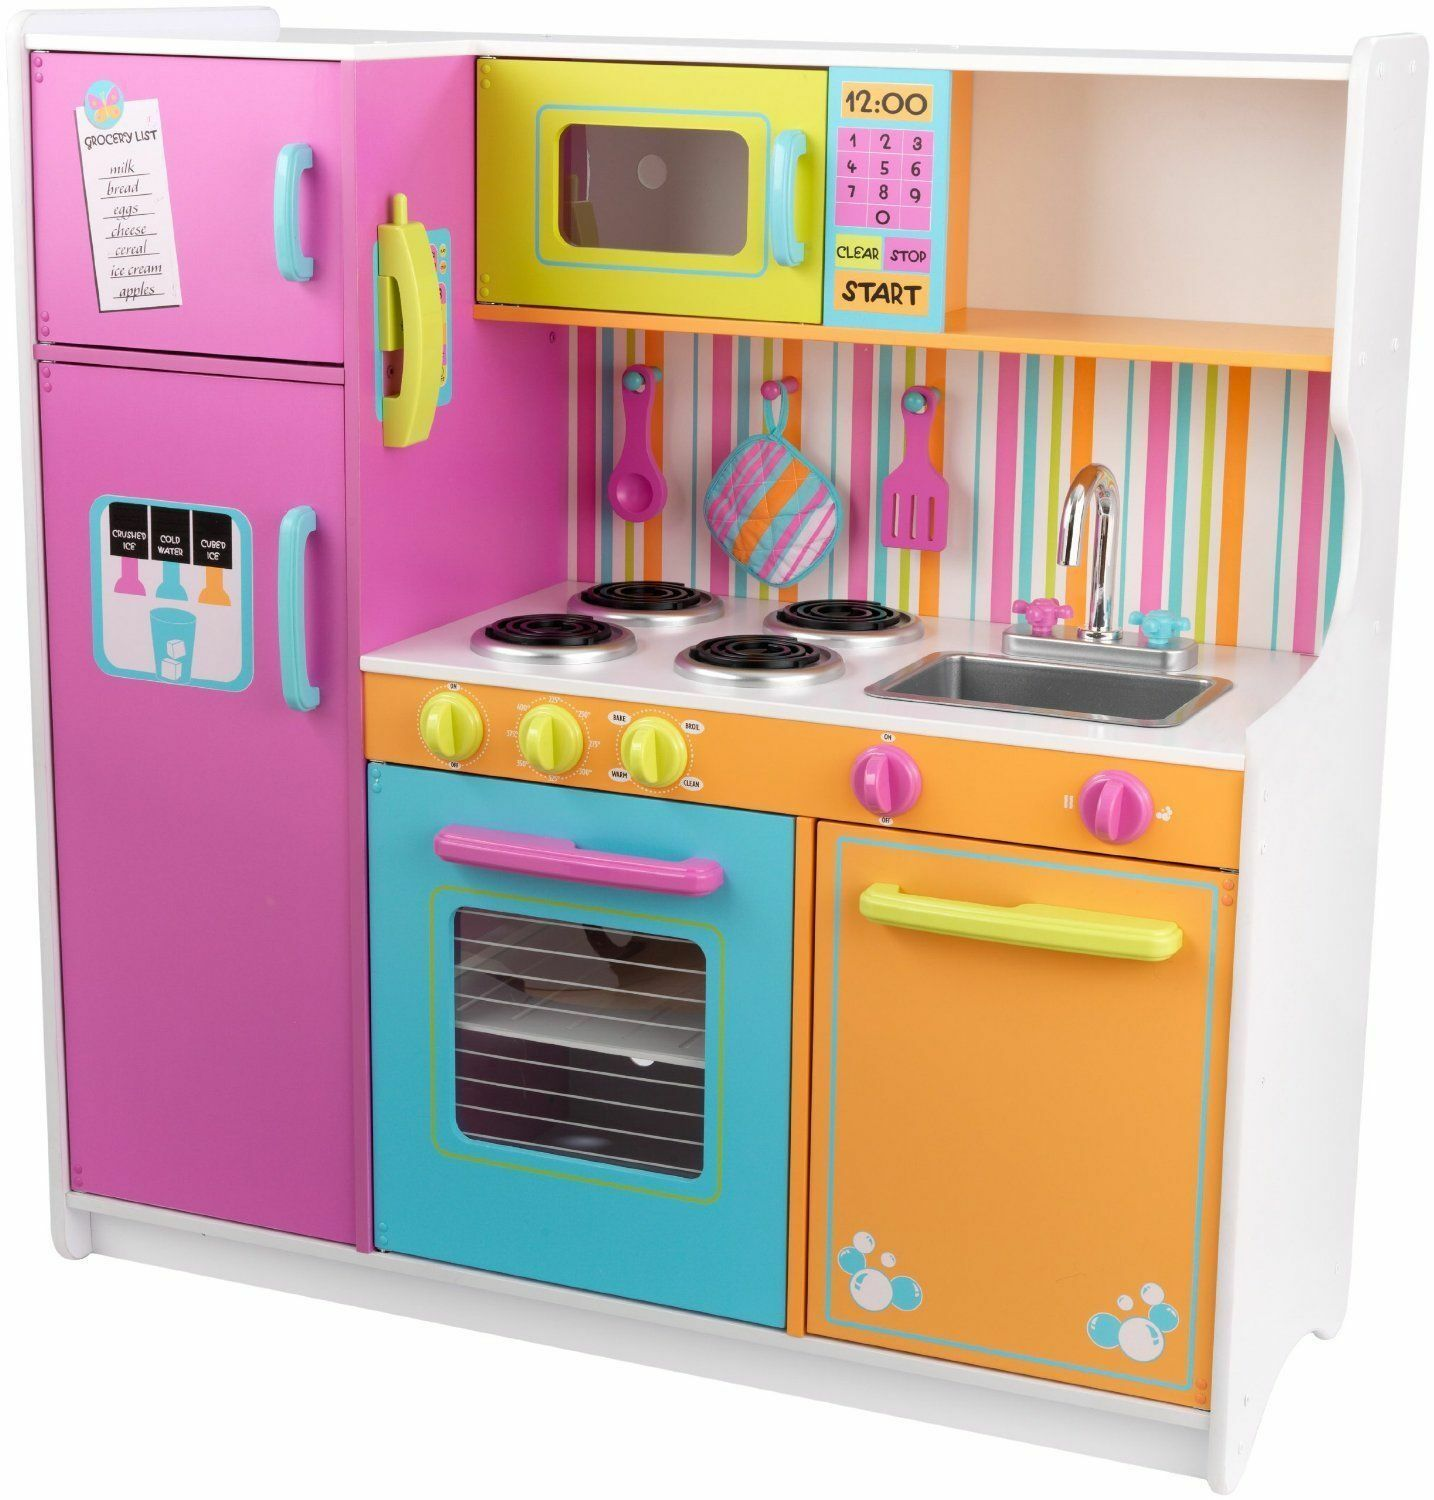 Top 10 Wooden Kitchens For Kids